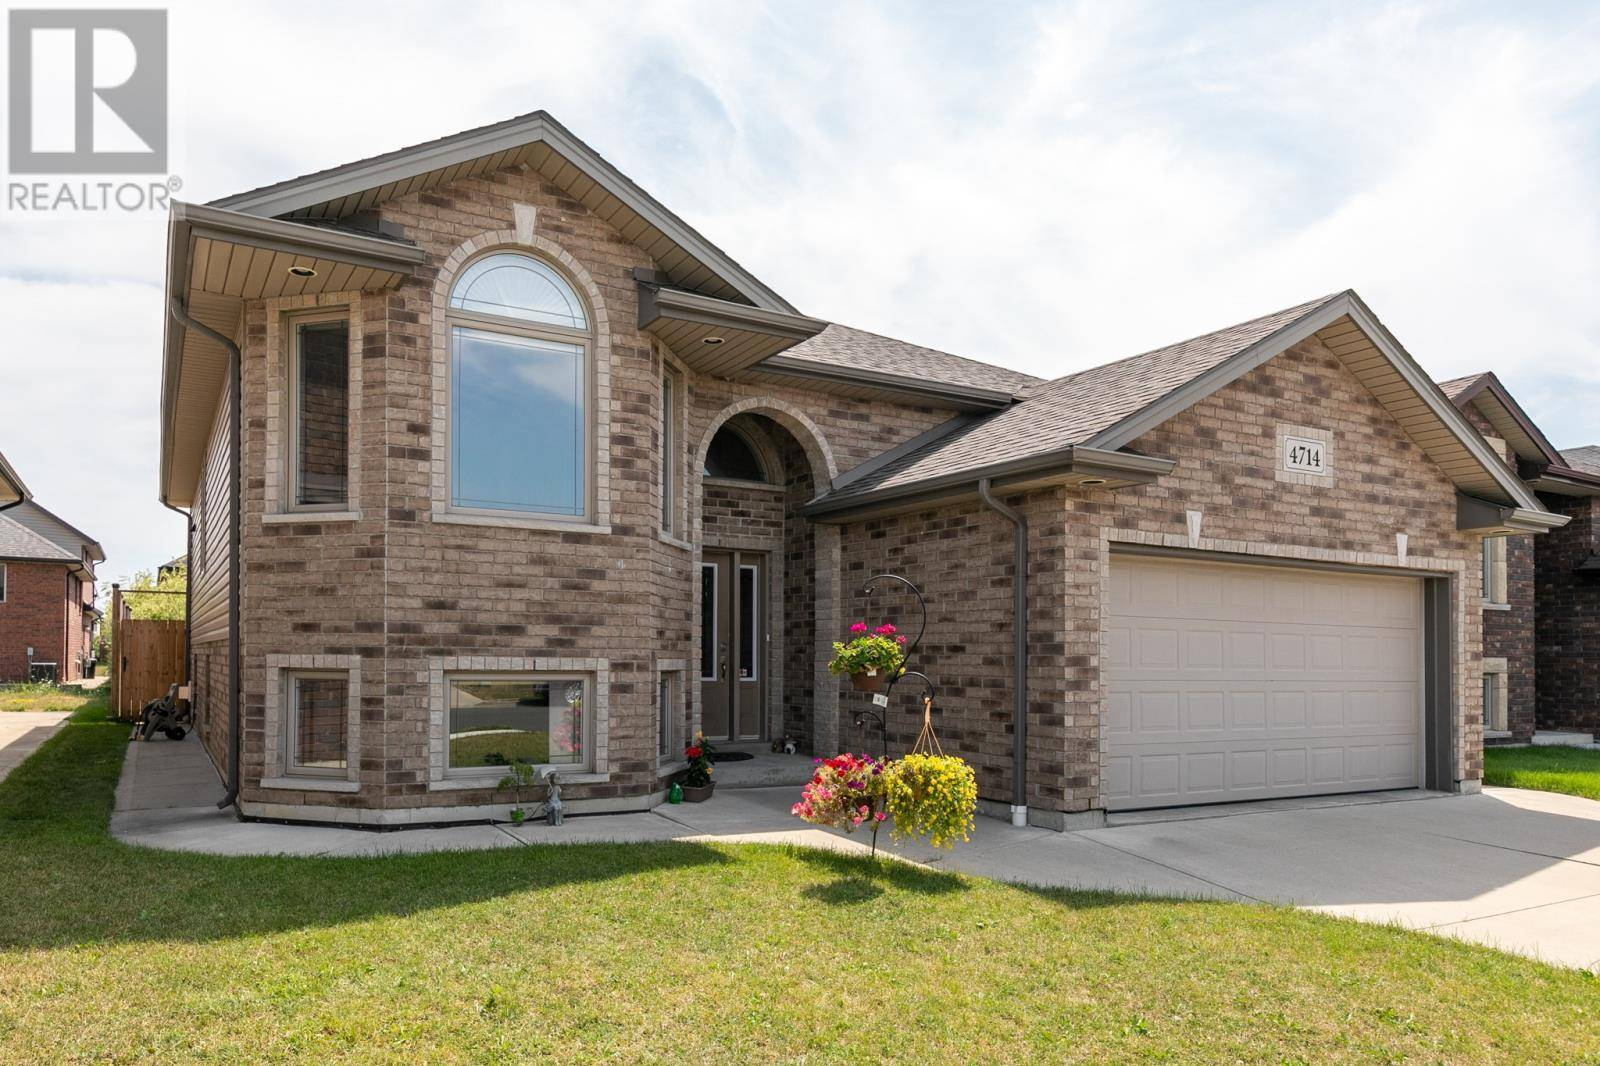 House for sale at 4714 Periwinkle  Windsor Ontario - MLS: 19025188